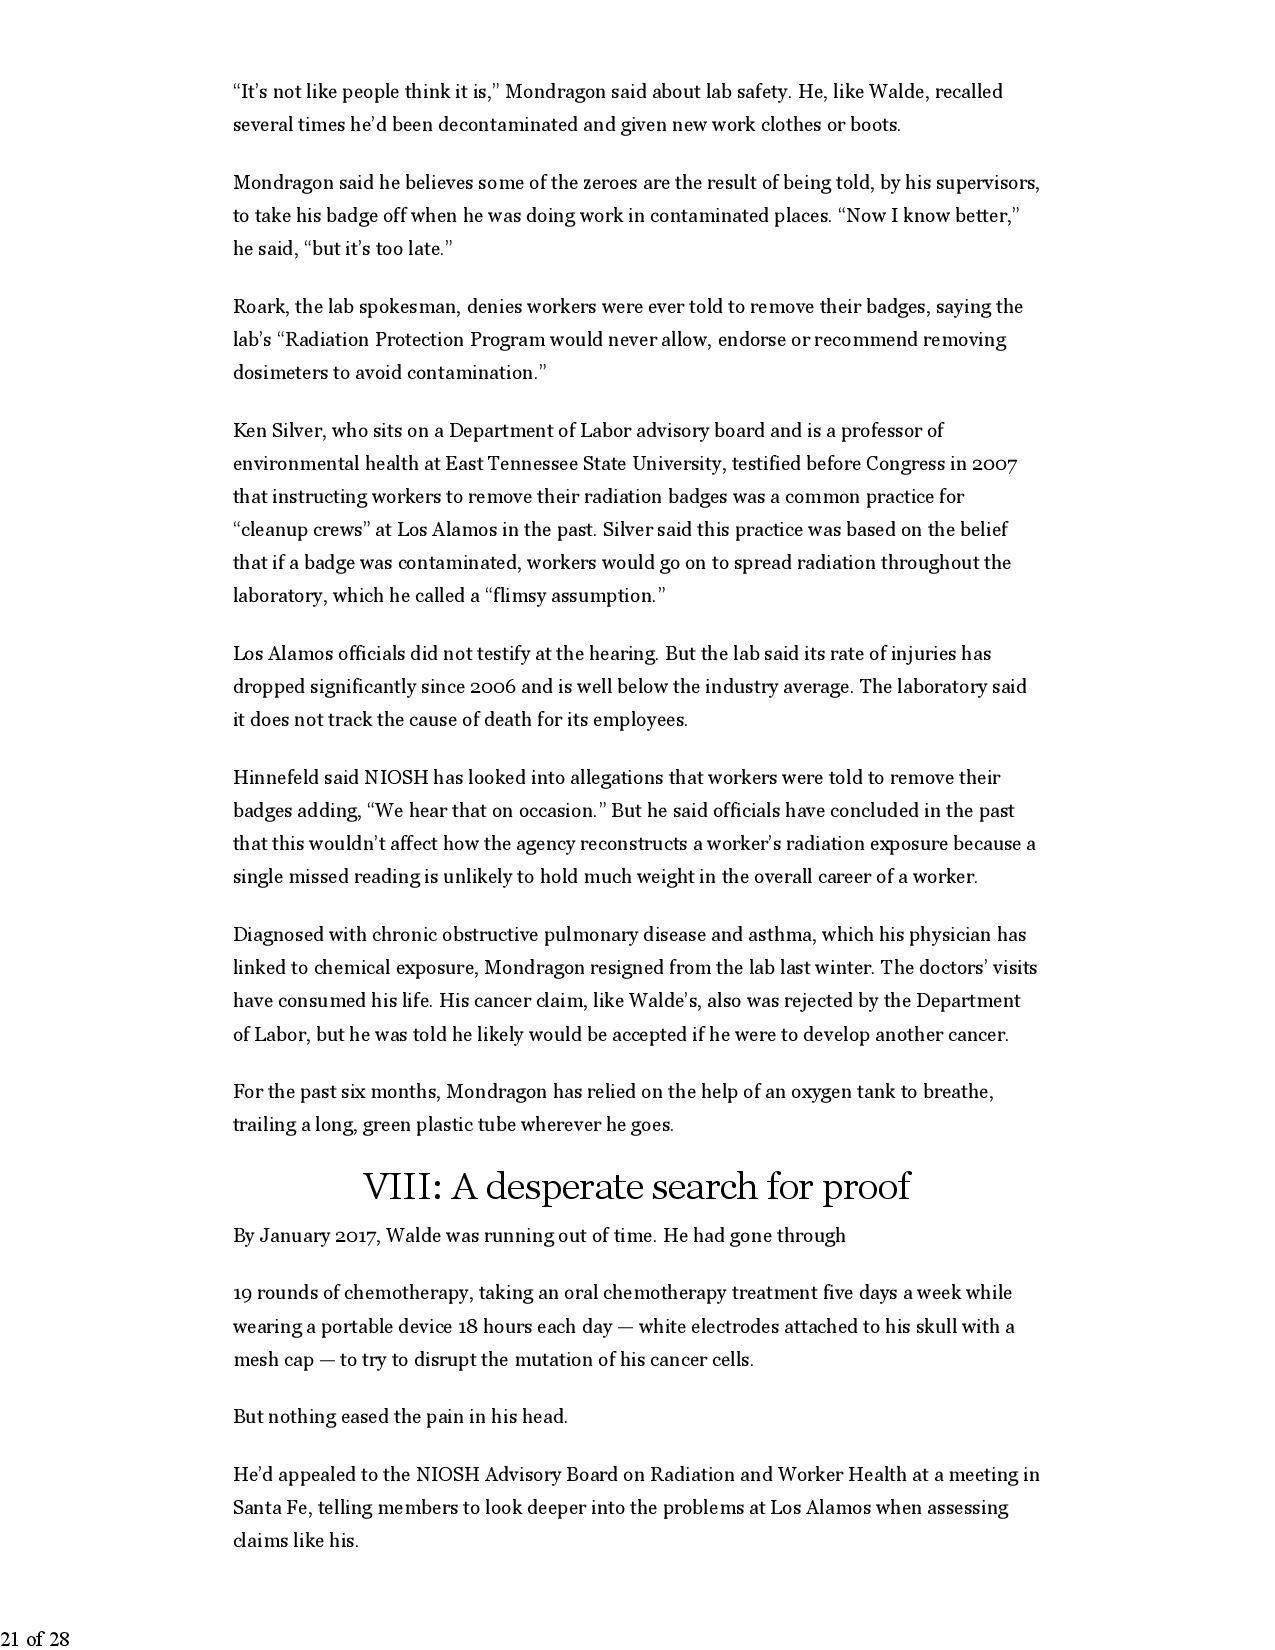 The life and death of Chad Walde - Local News-page-021